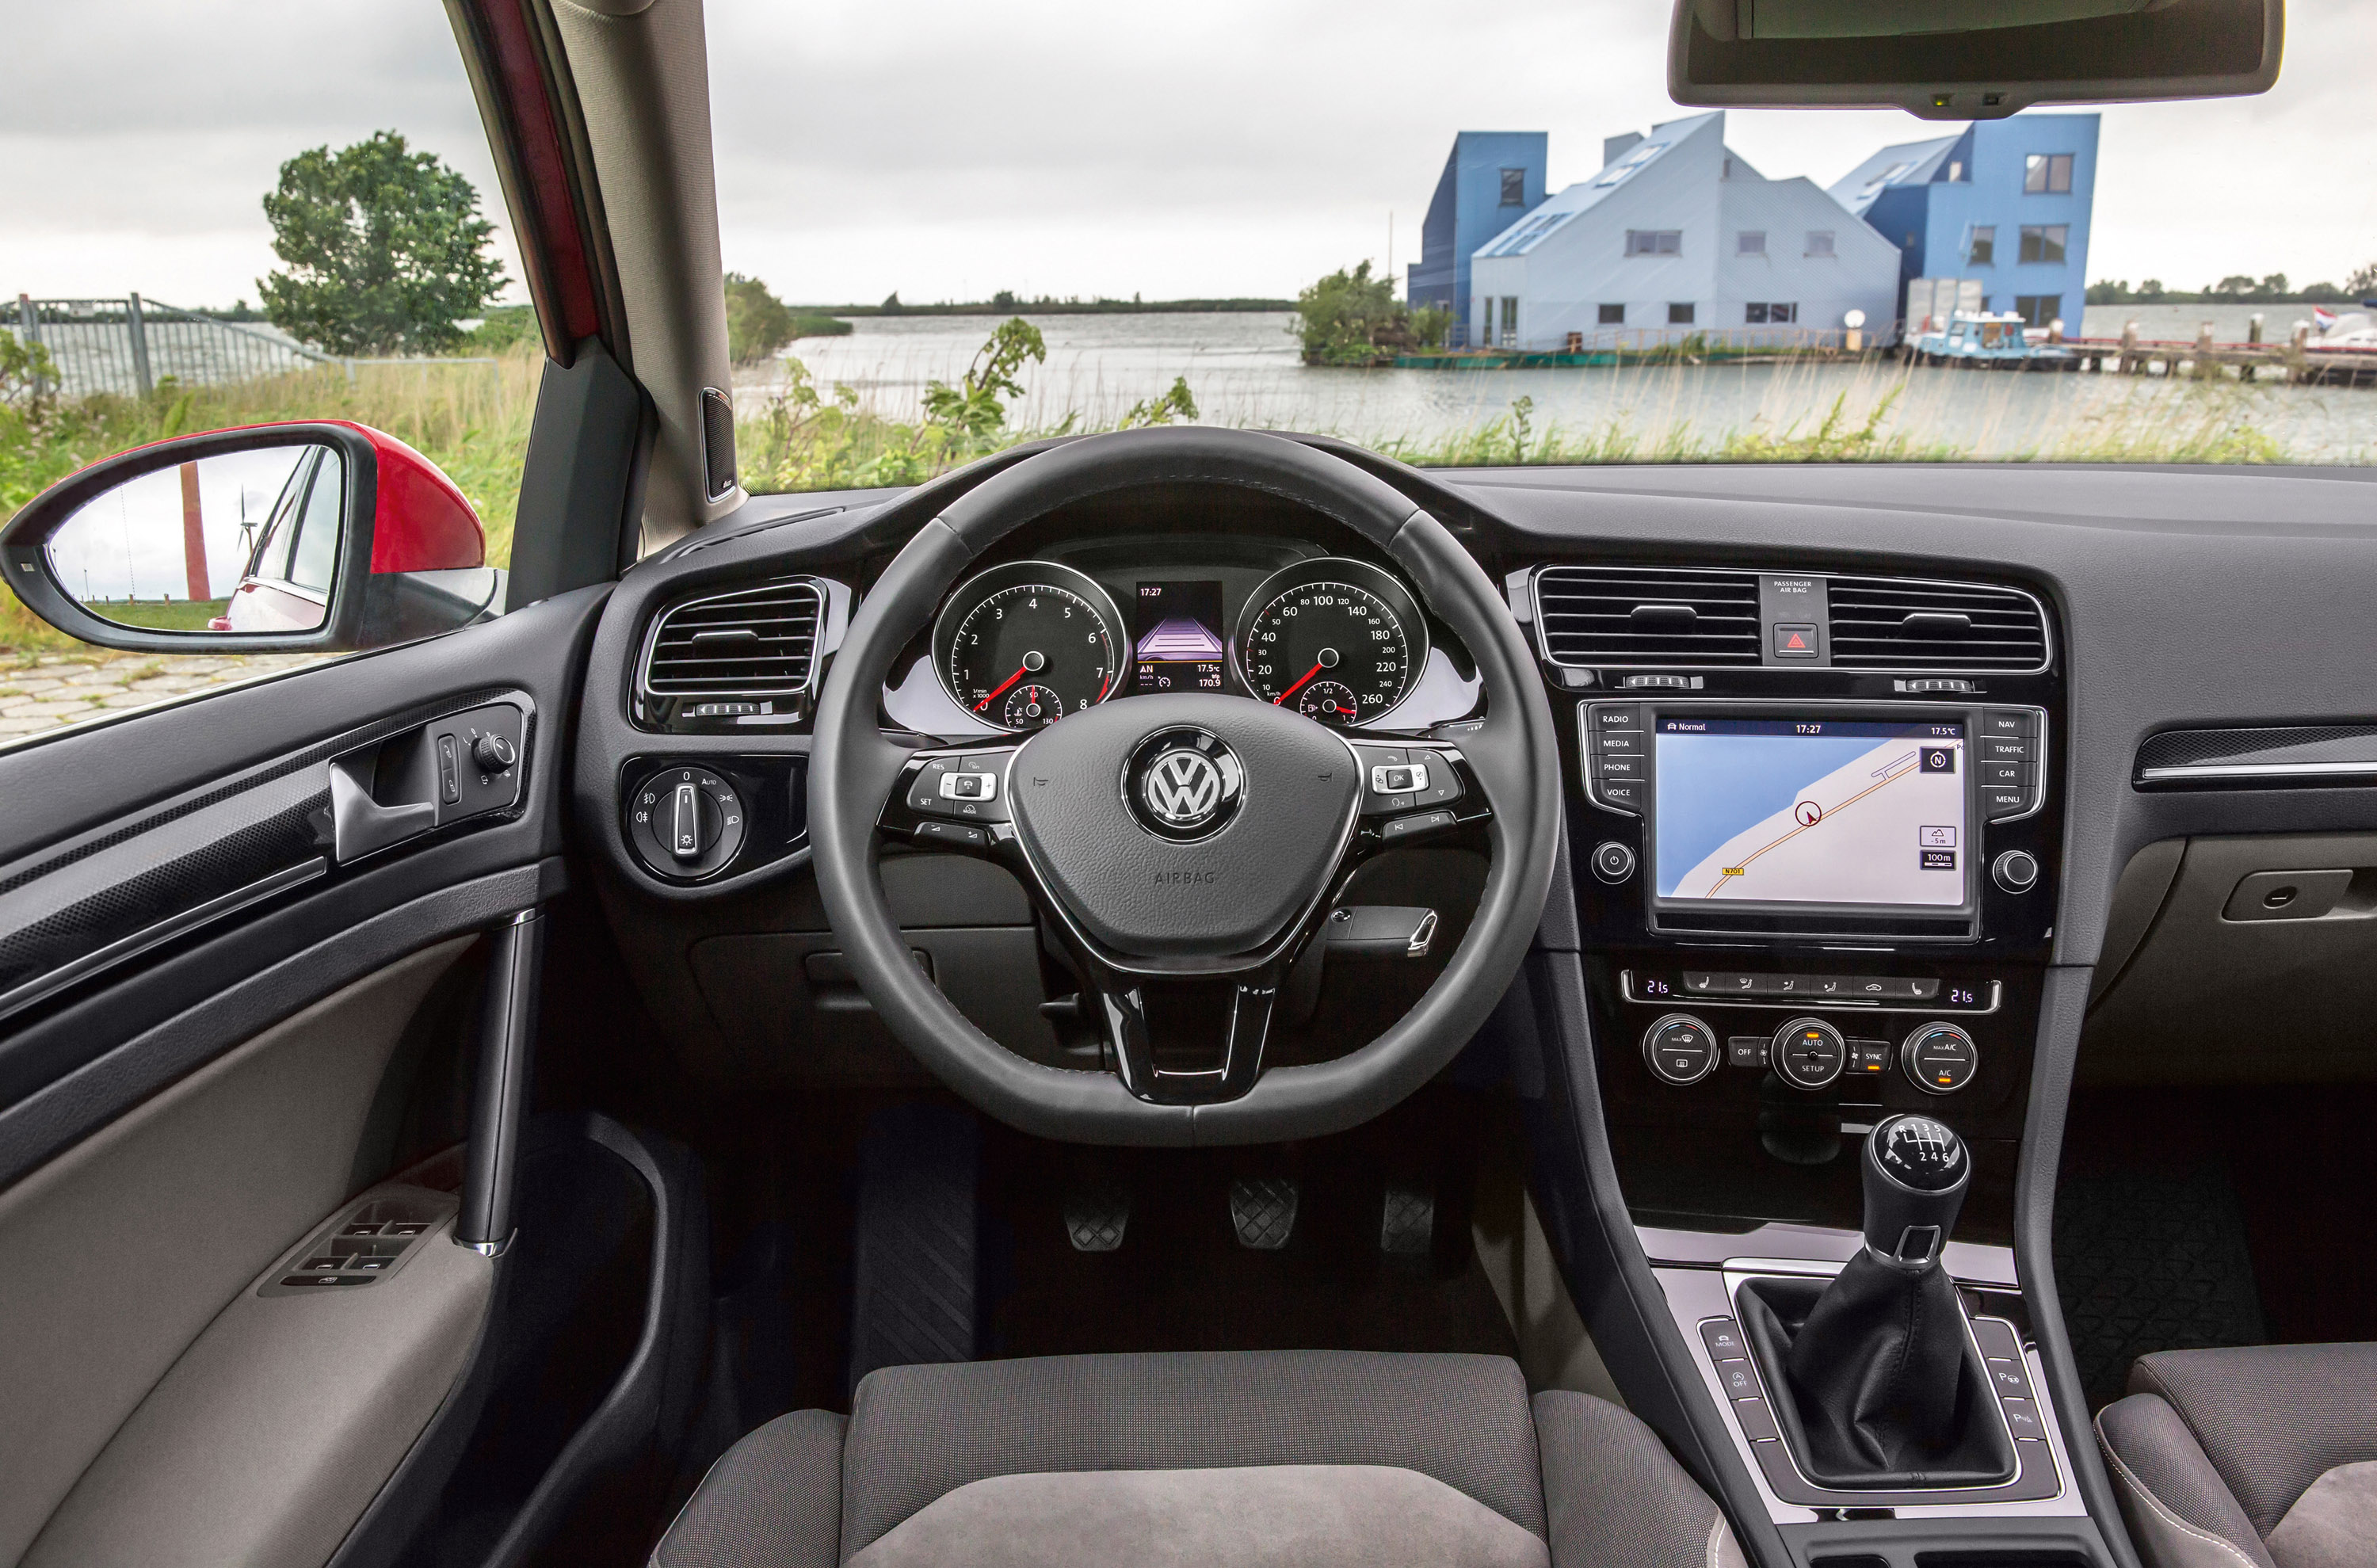 2014 Volkswagen Golf Vii Variant 4motion Eu Price